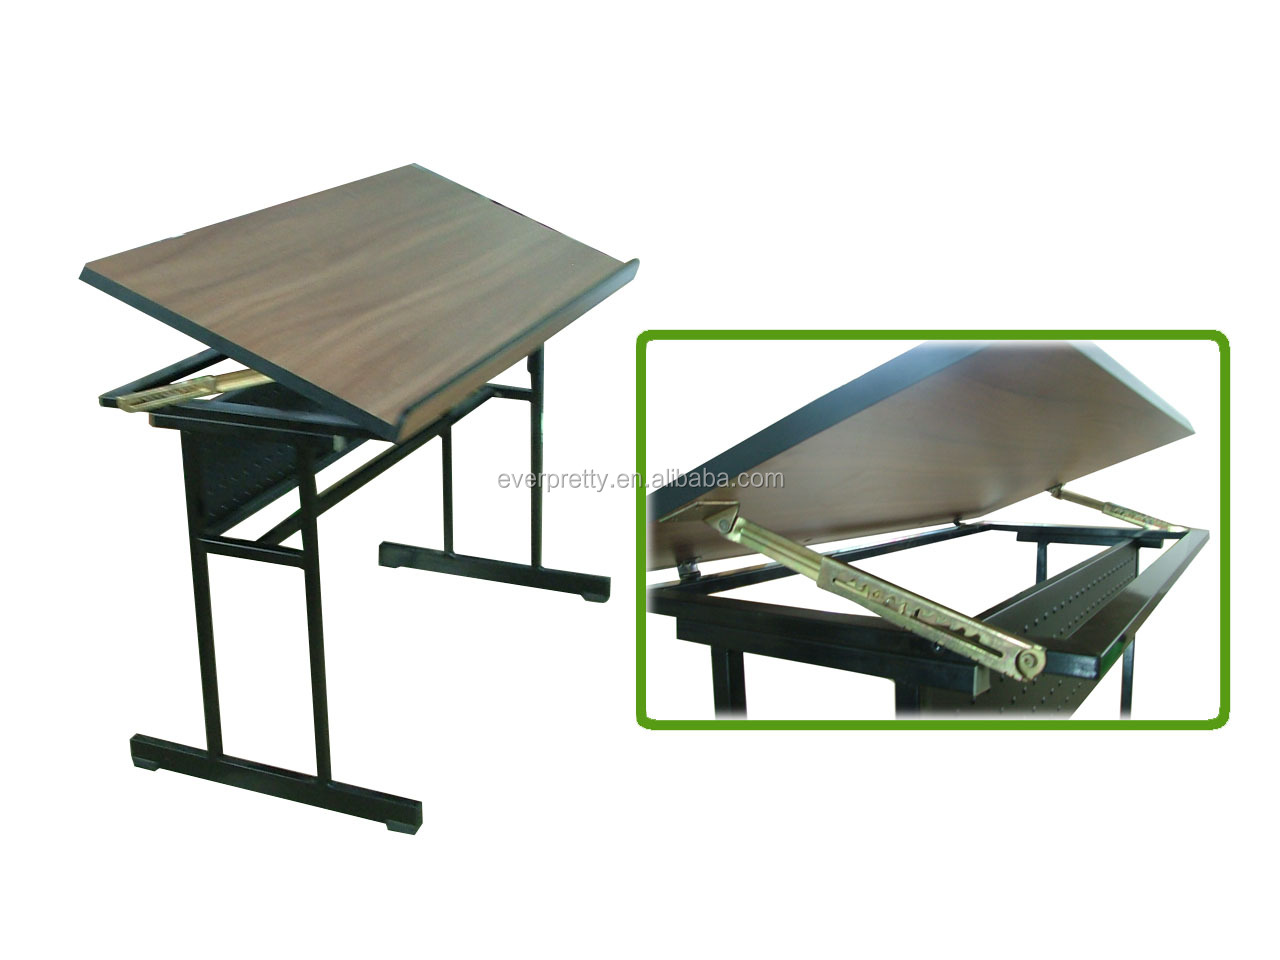 Table drawing for kids - Commercial Drafting Tables Drawing School School Desks Kids Room Furniture Children School Furniture